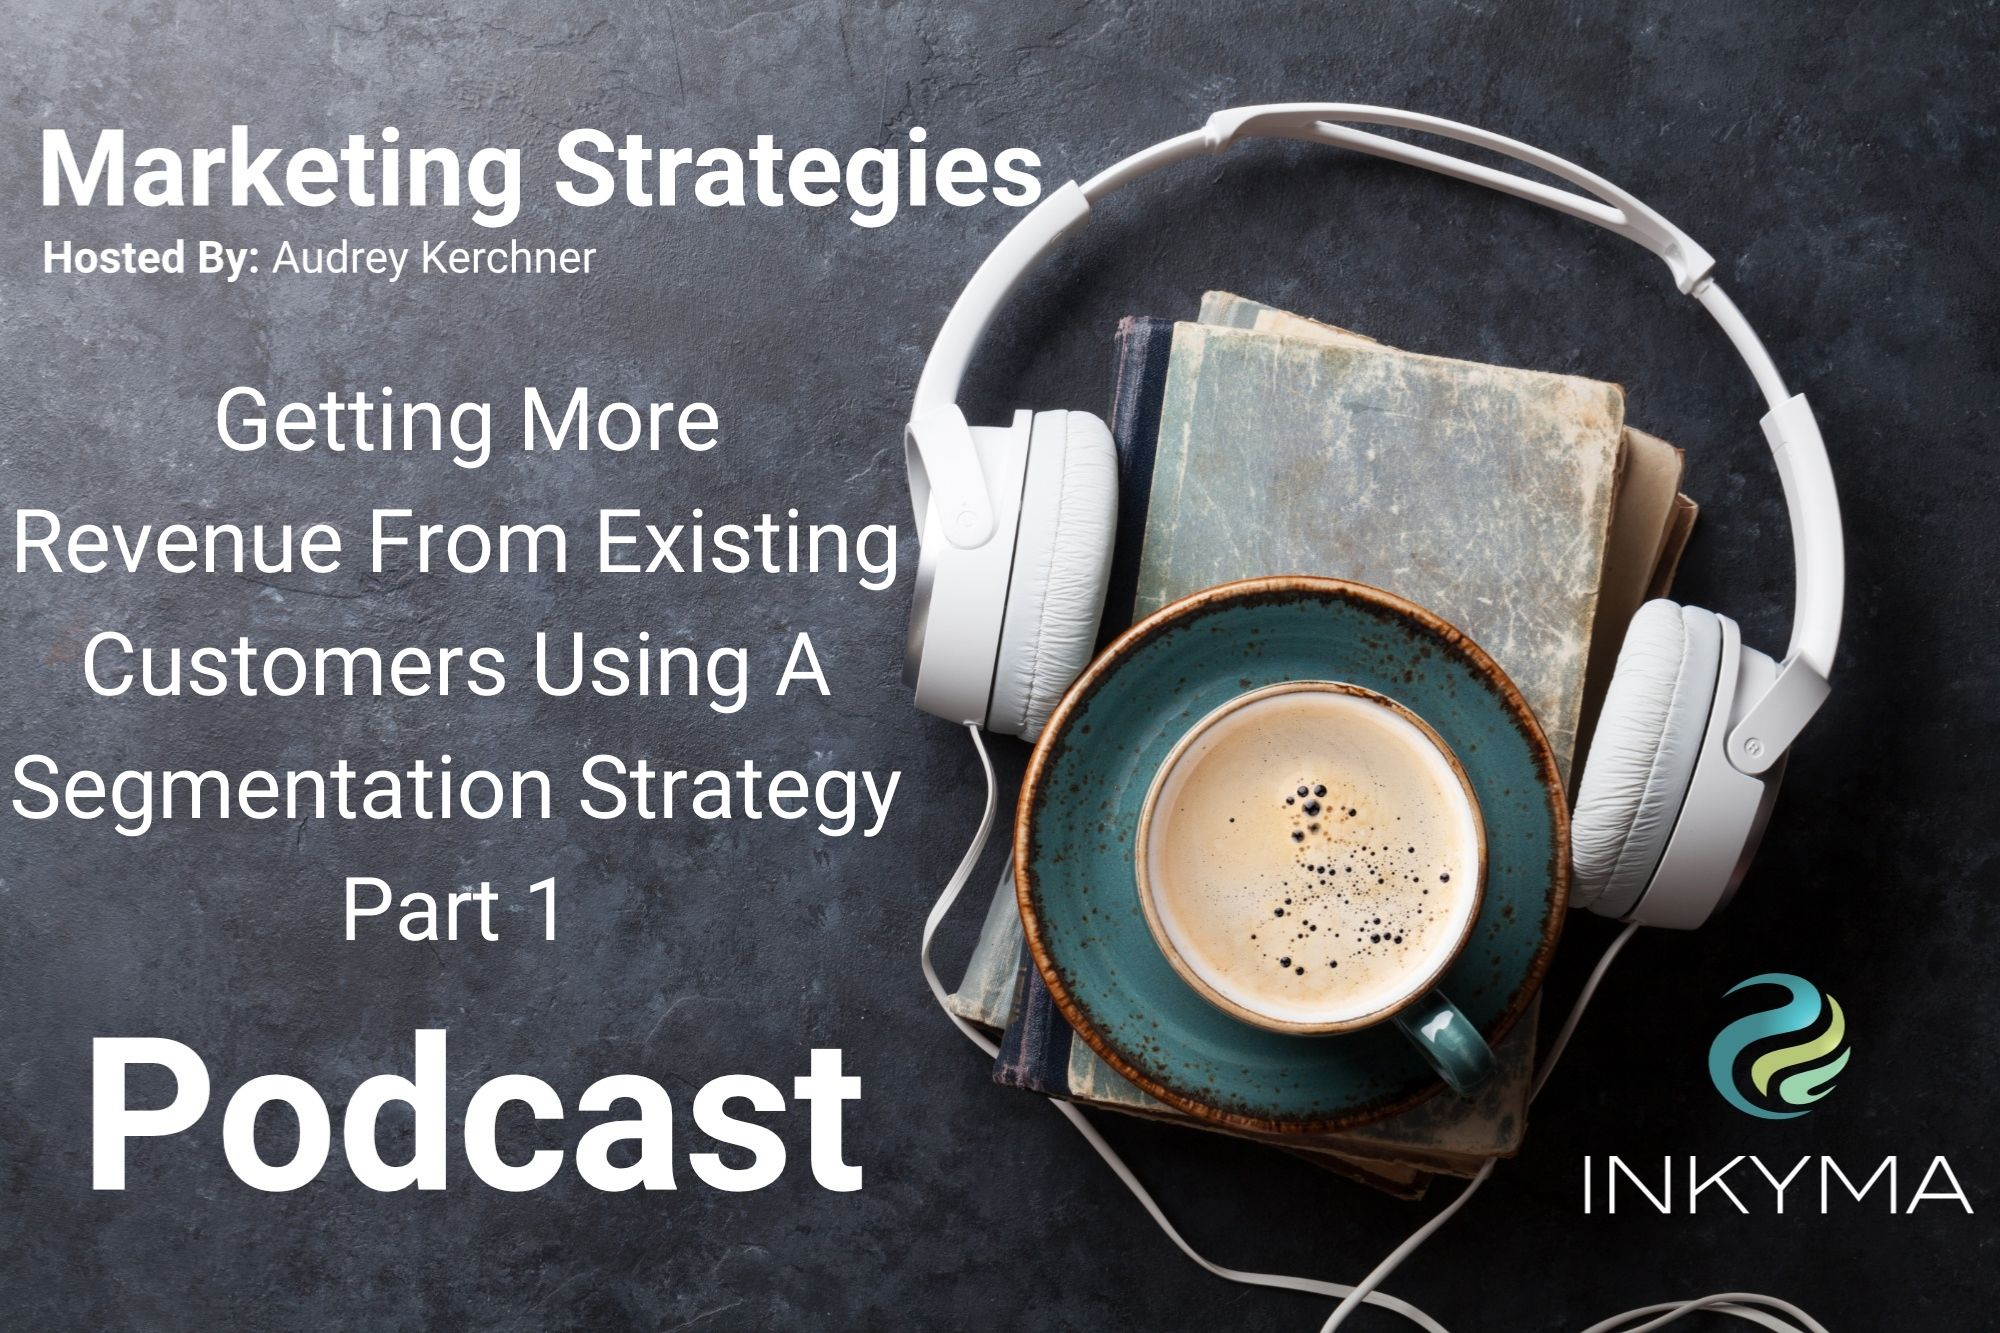 Getting More Revenue From Existing Customers Using A Segmentation Strategy(Part 1)